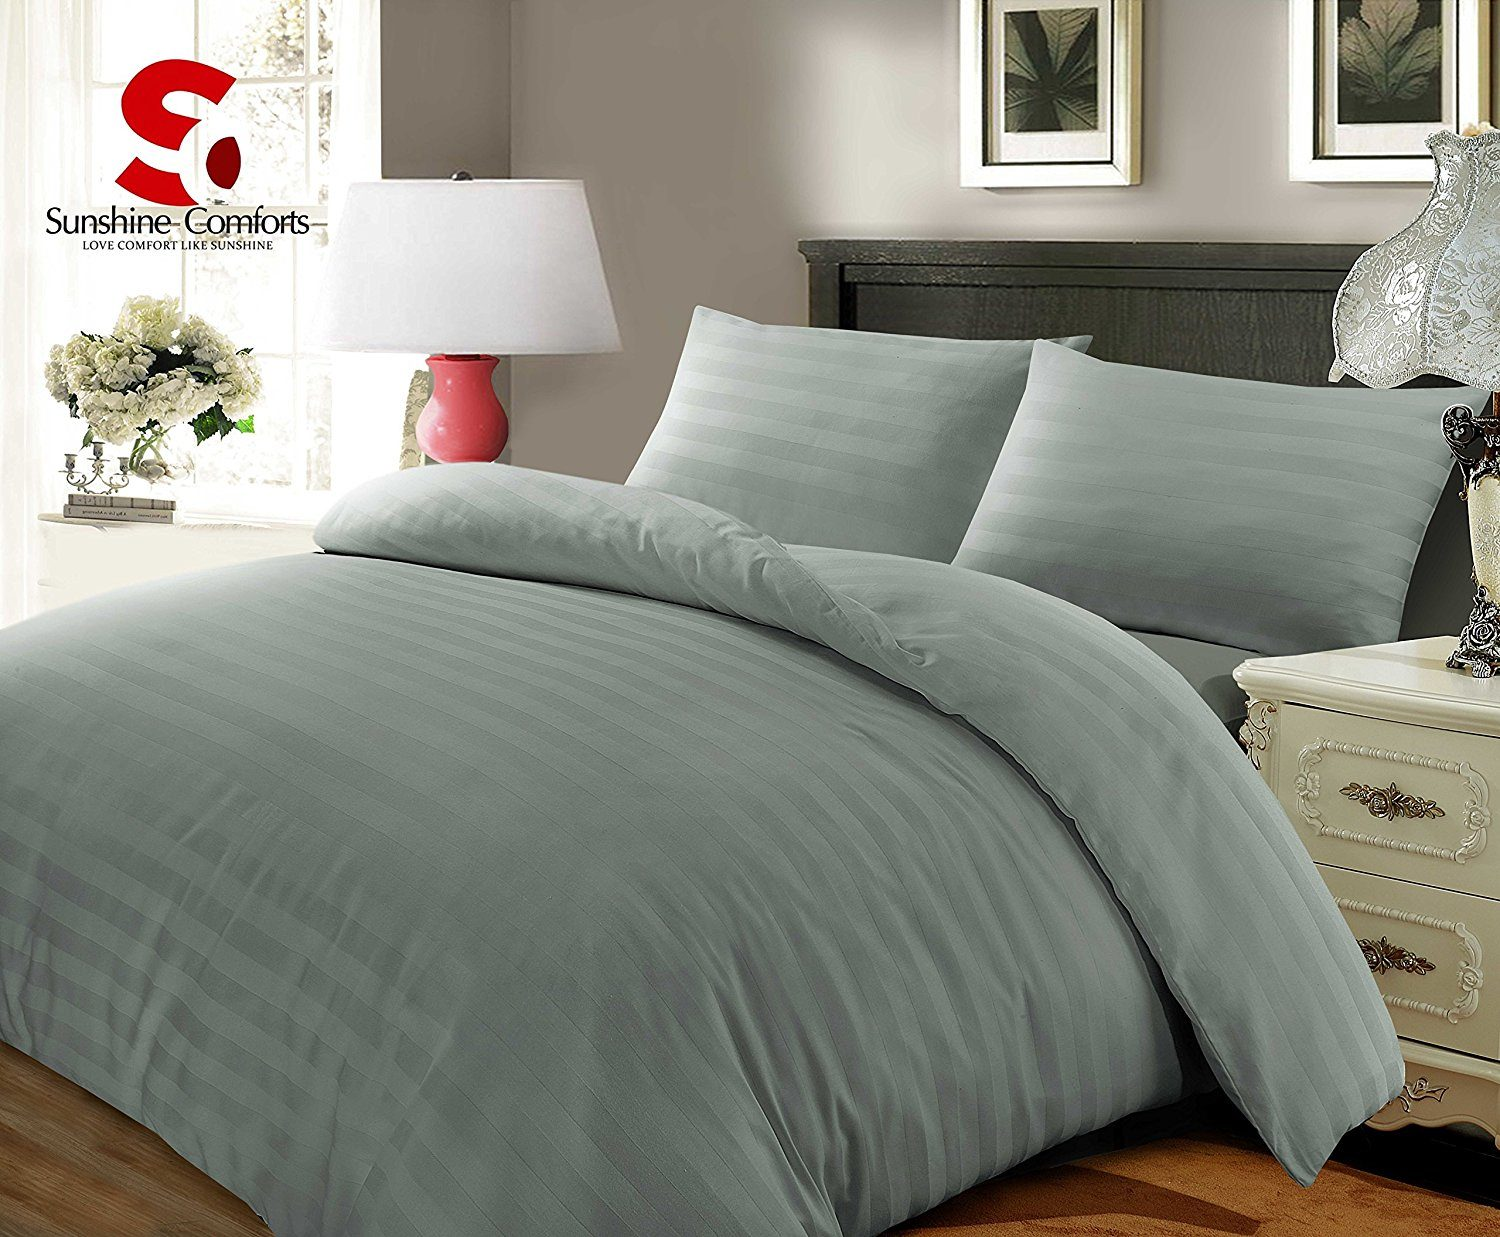 SUNSHINE COMFORTS ® 100% LUXURY HOTEL QUALITY EGYPTIAN COTTON SATIN STRIPE GREY DUVET COVER SET